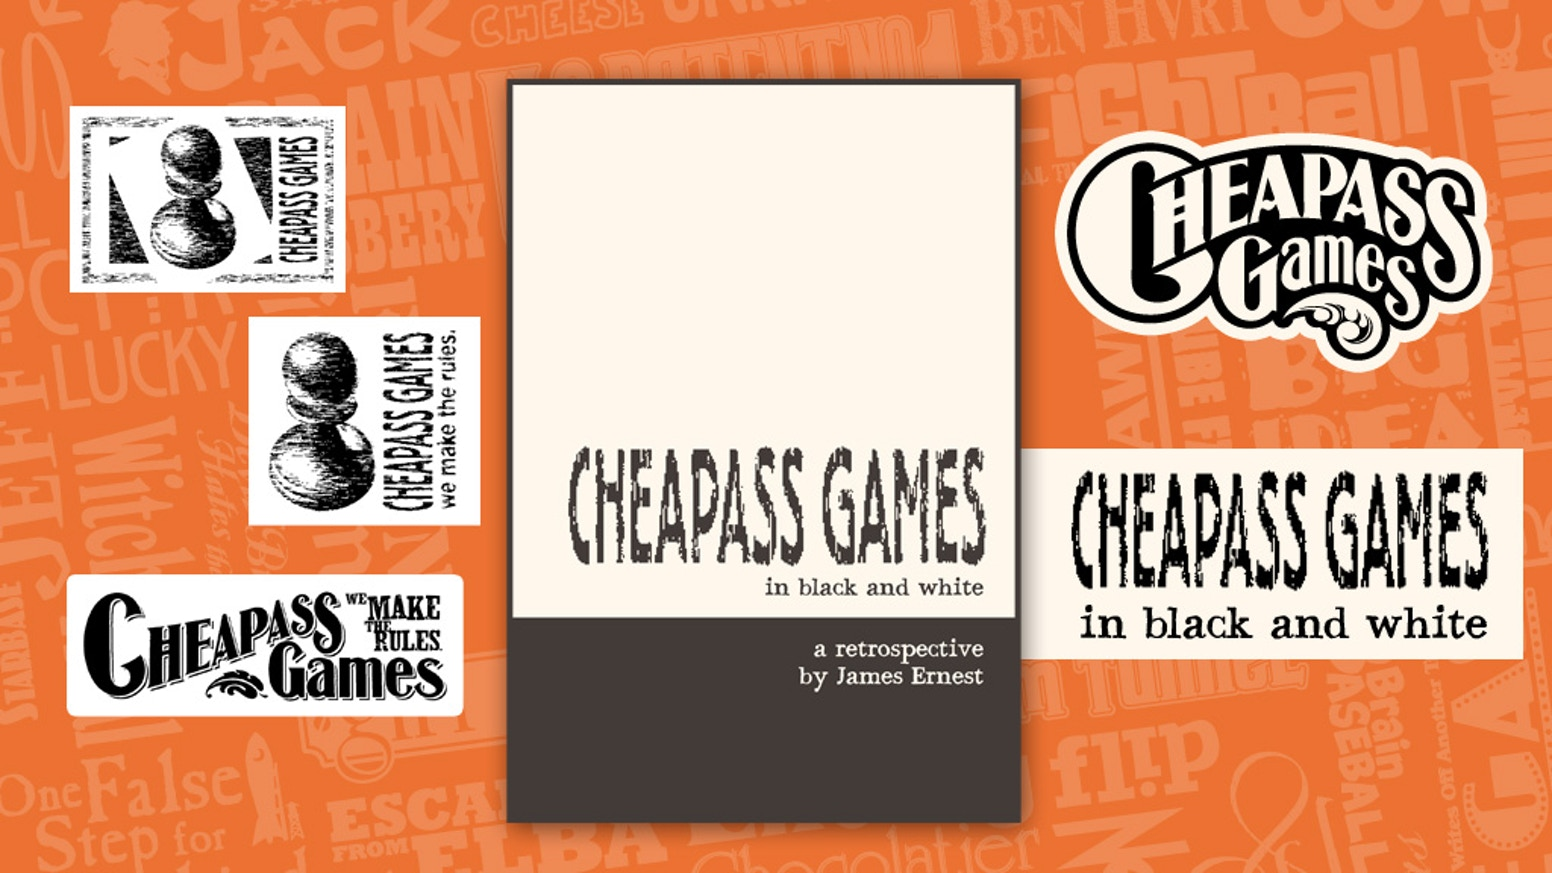 A retrospective of 22 years of Cheapass Games, more than 100 titles in a handsome hardcover book.